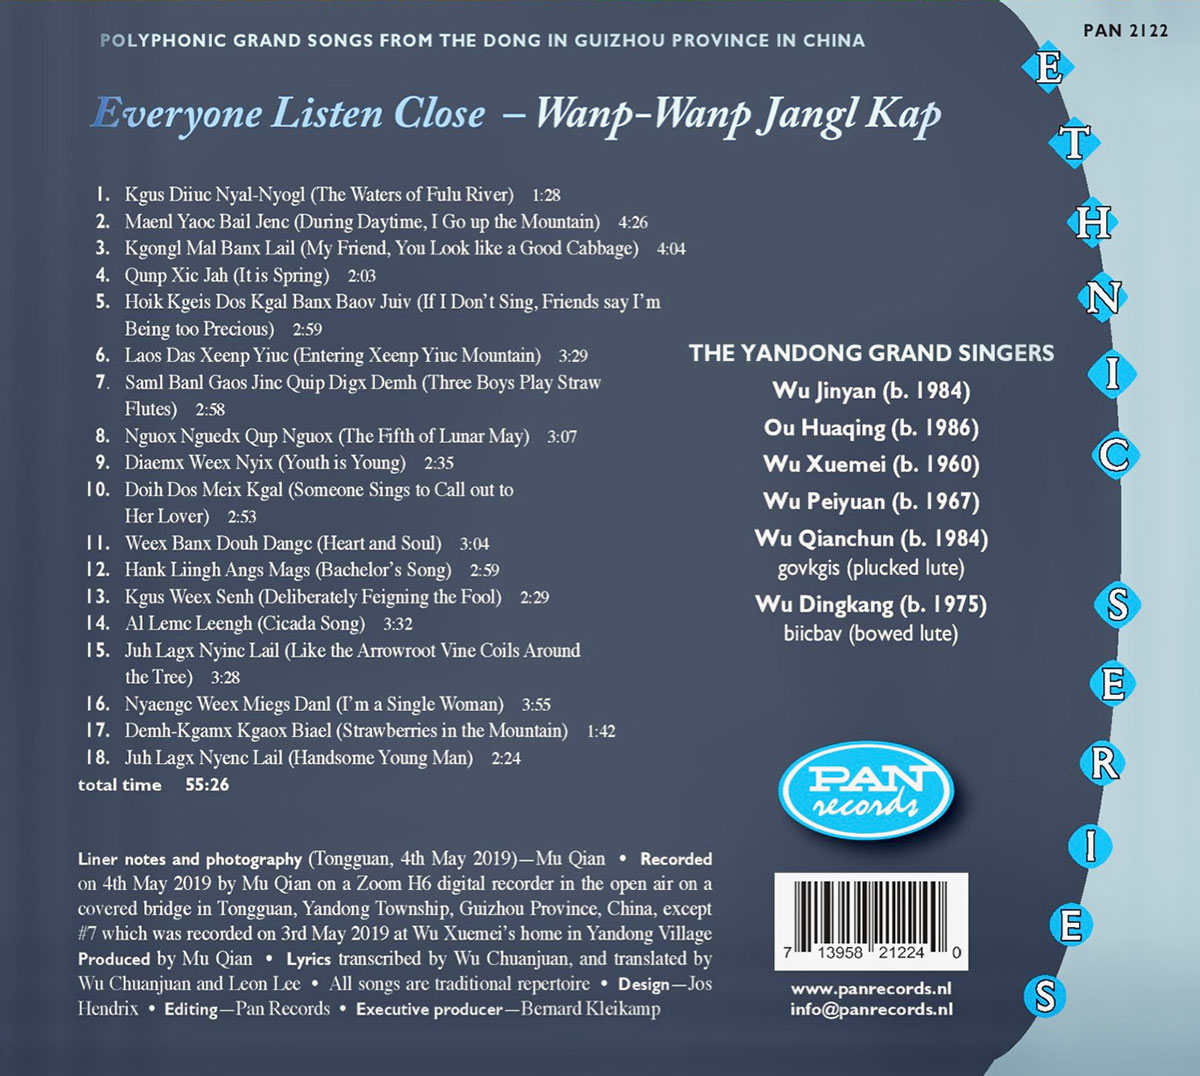 CD back cover with track listing.